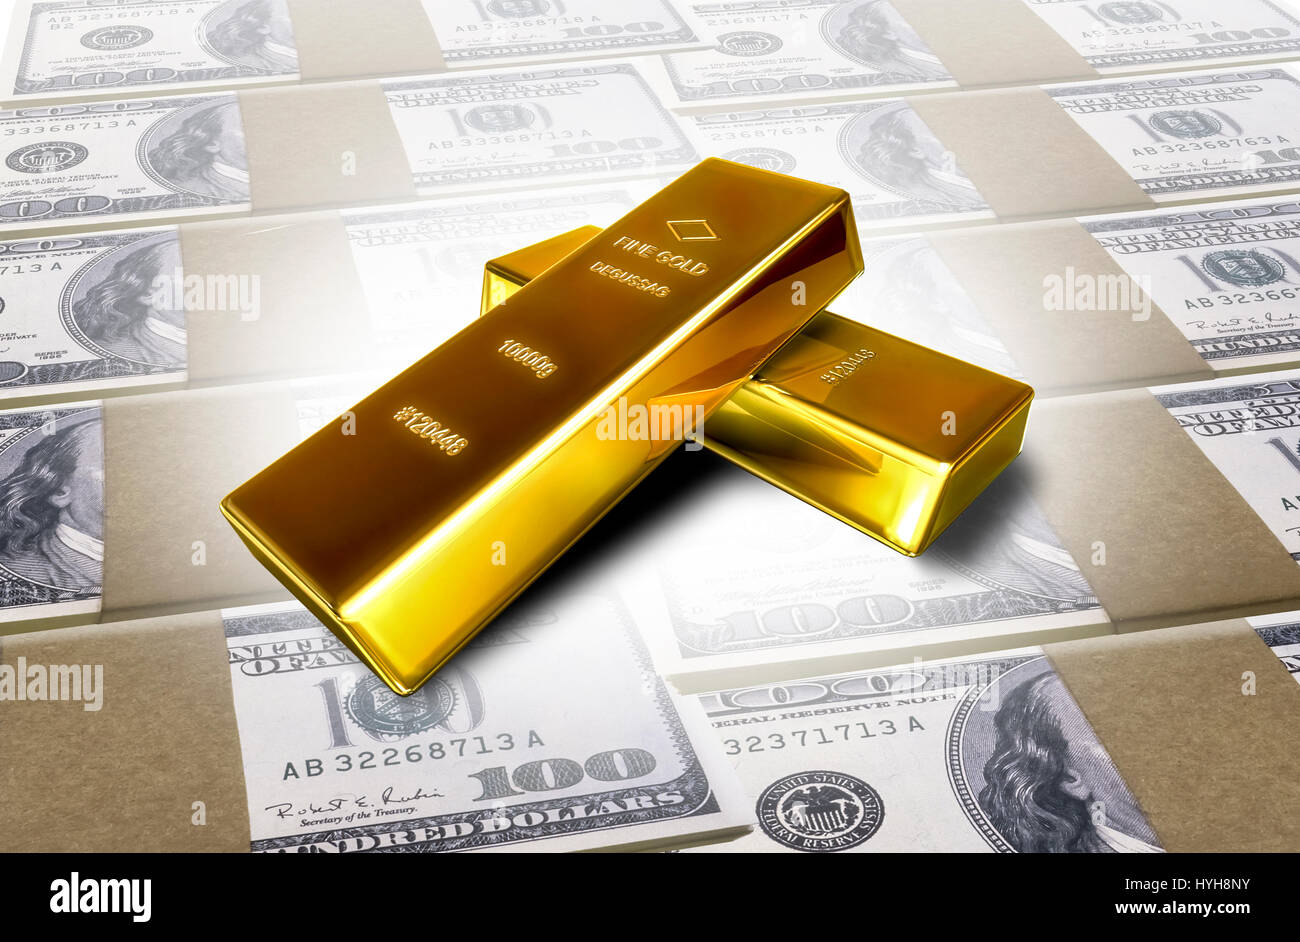 Two shiny precious bars of gold,isolated against the background. - Stock Image